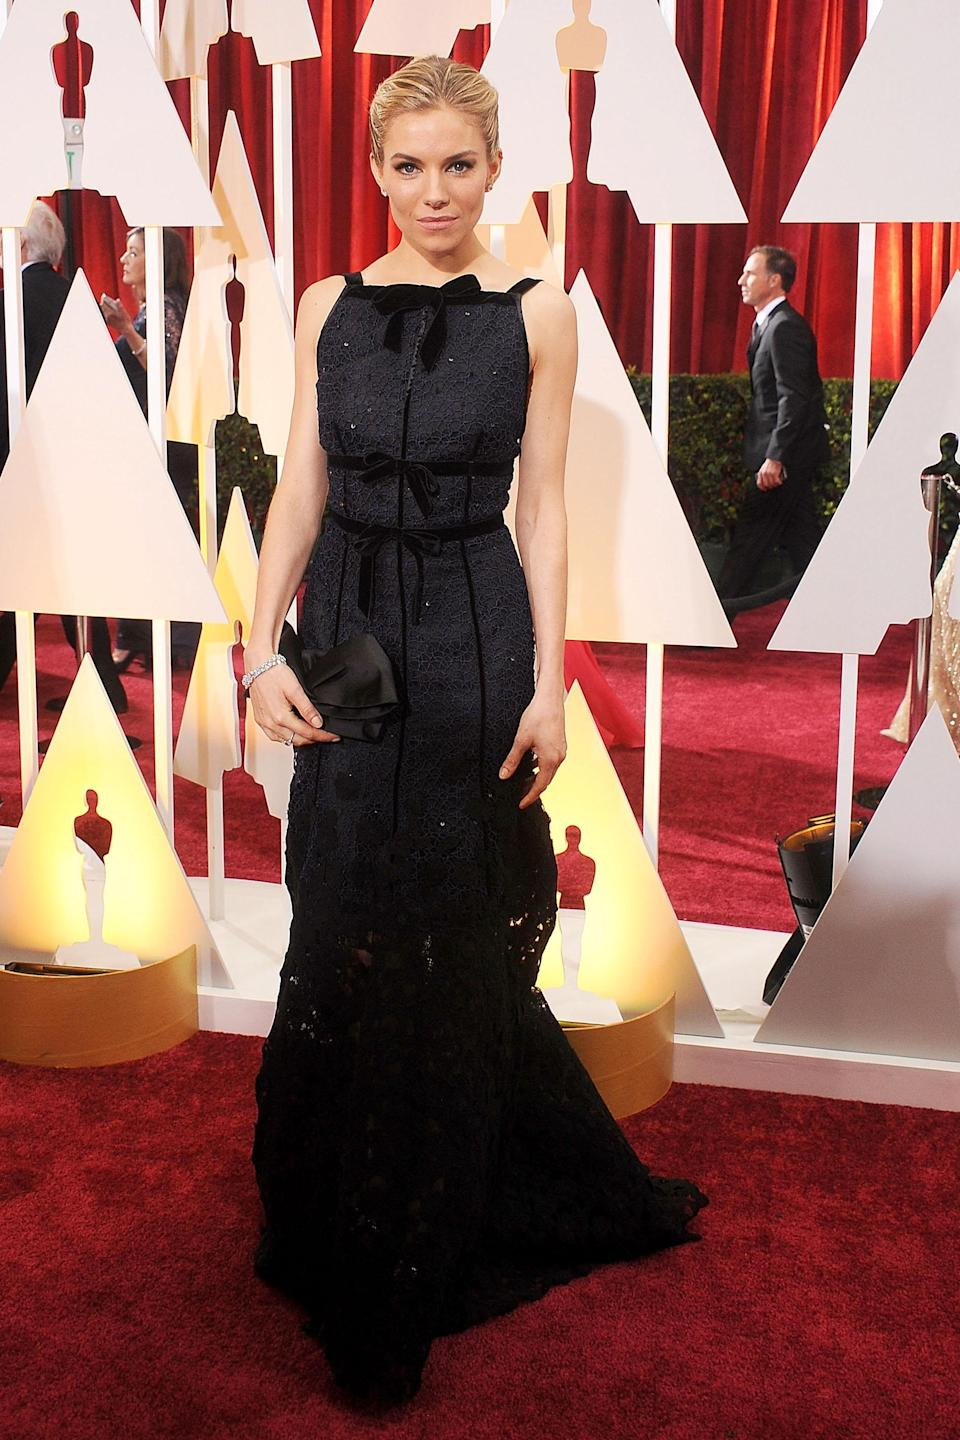 """<h2>Sienna Miller, 2015</h2><br>For his red carpet debut designing for Oscar de la Renta, Peter Copping made quite the impression with this bow-embellished, square neck gown on Sienna Miller.<br><br><em>Sienna Miller in Oscar de la Renta.</em><span class=""""copyright"""">Photo: Gregg DeGuire/WireImage/Getty Images. </span>"""